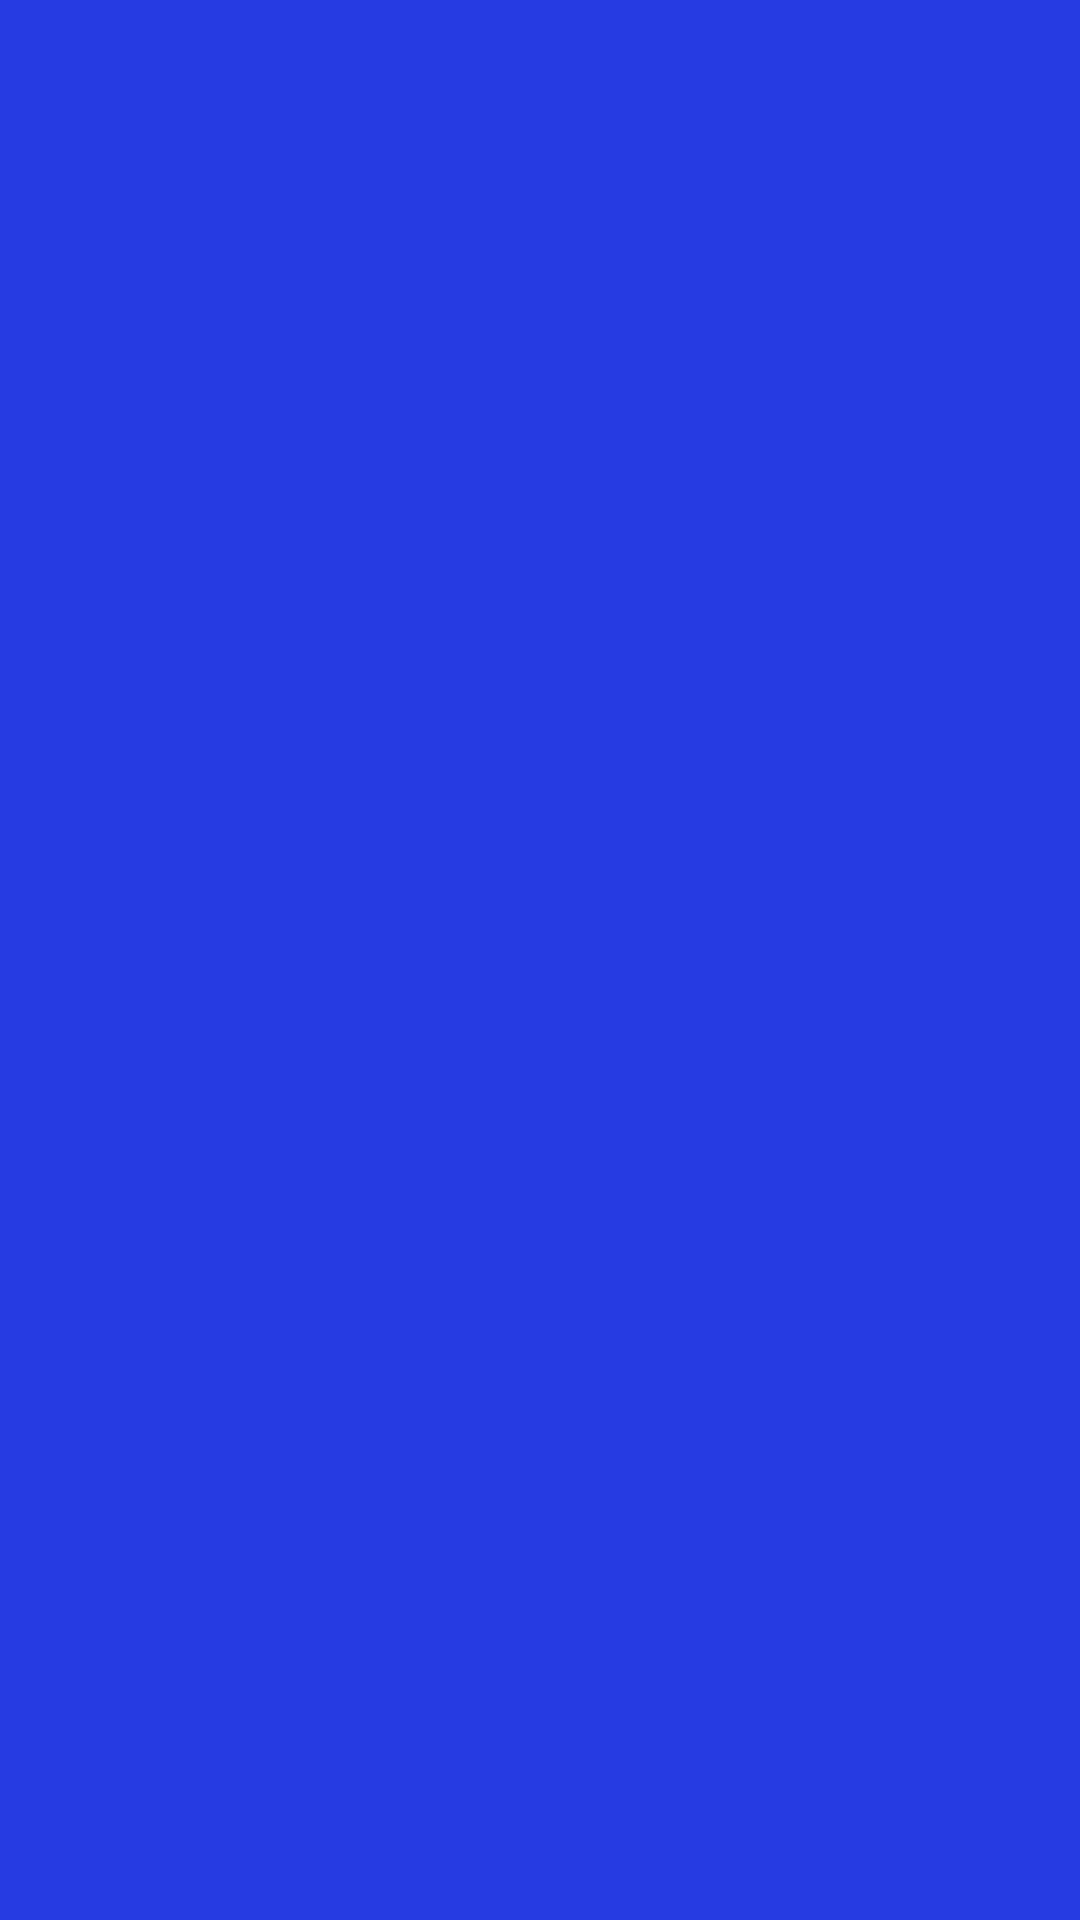 1080x1920 Palatinate Blue Solid Color Background